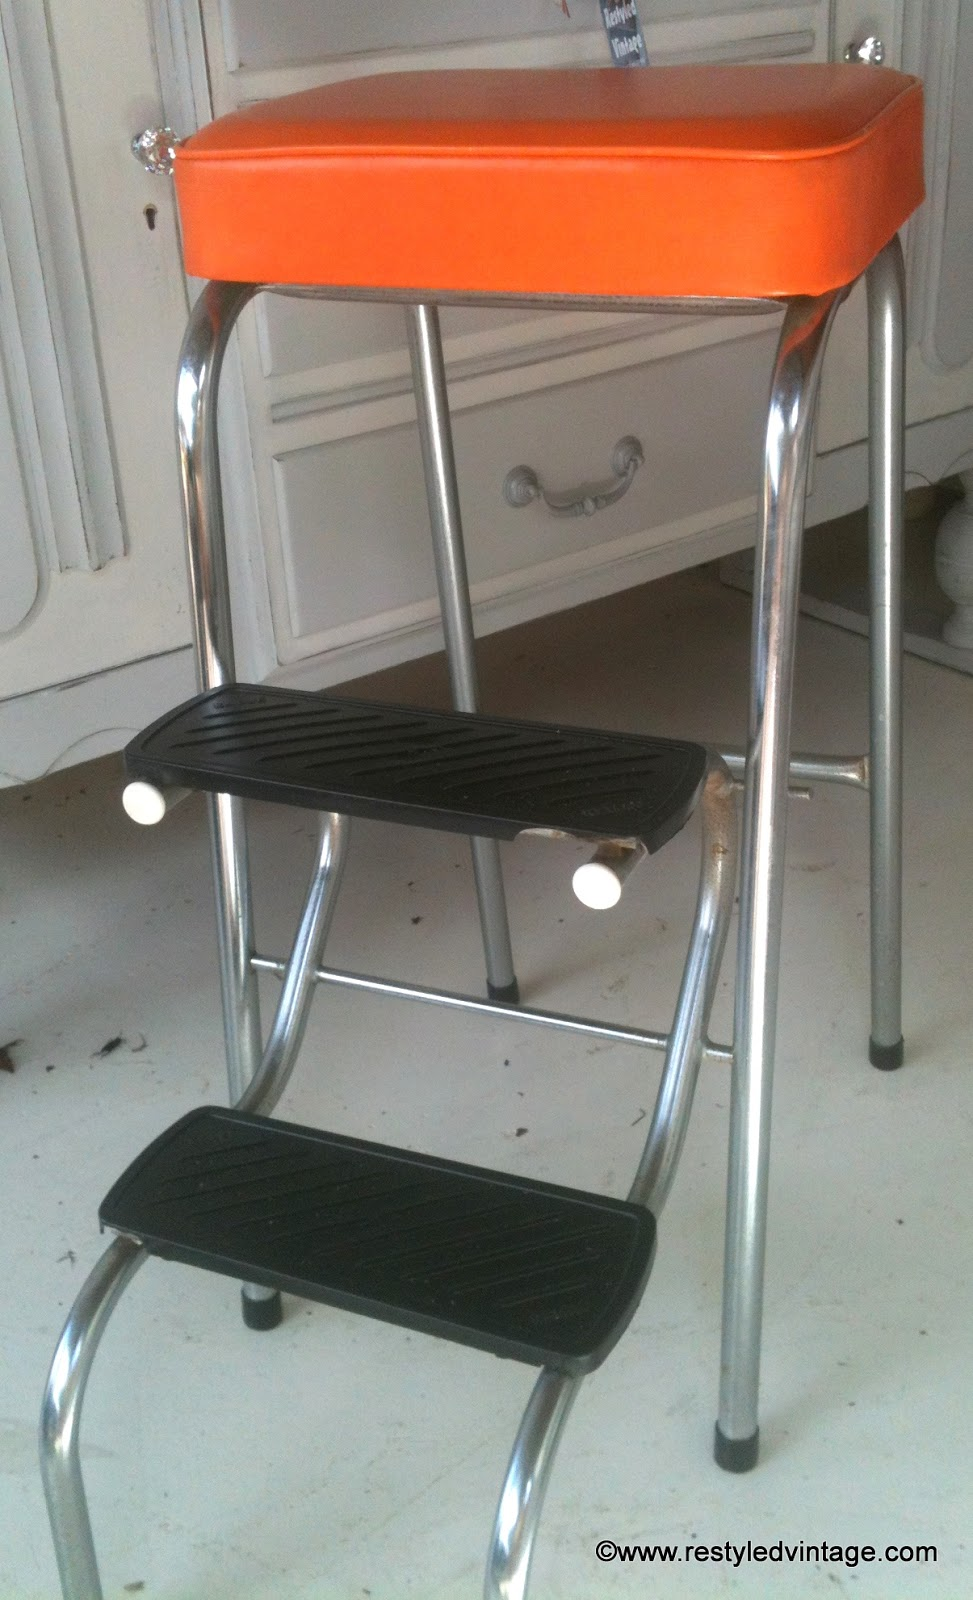 restyled vintage retro kitchen step stool makeover